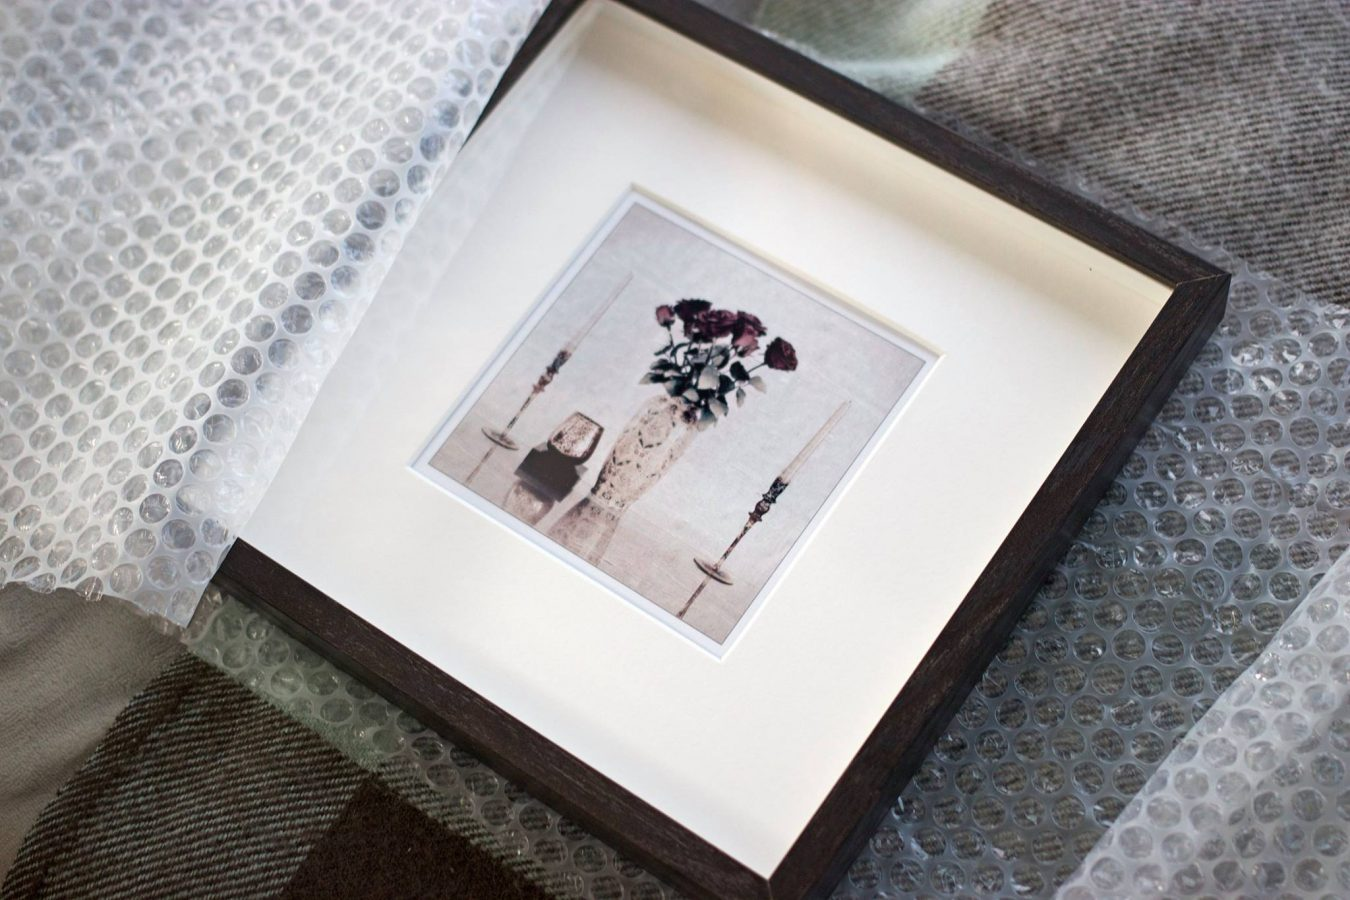 Framed photo still life with vase and candles